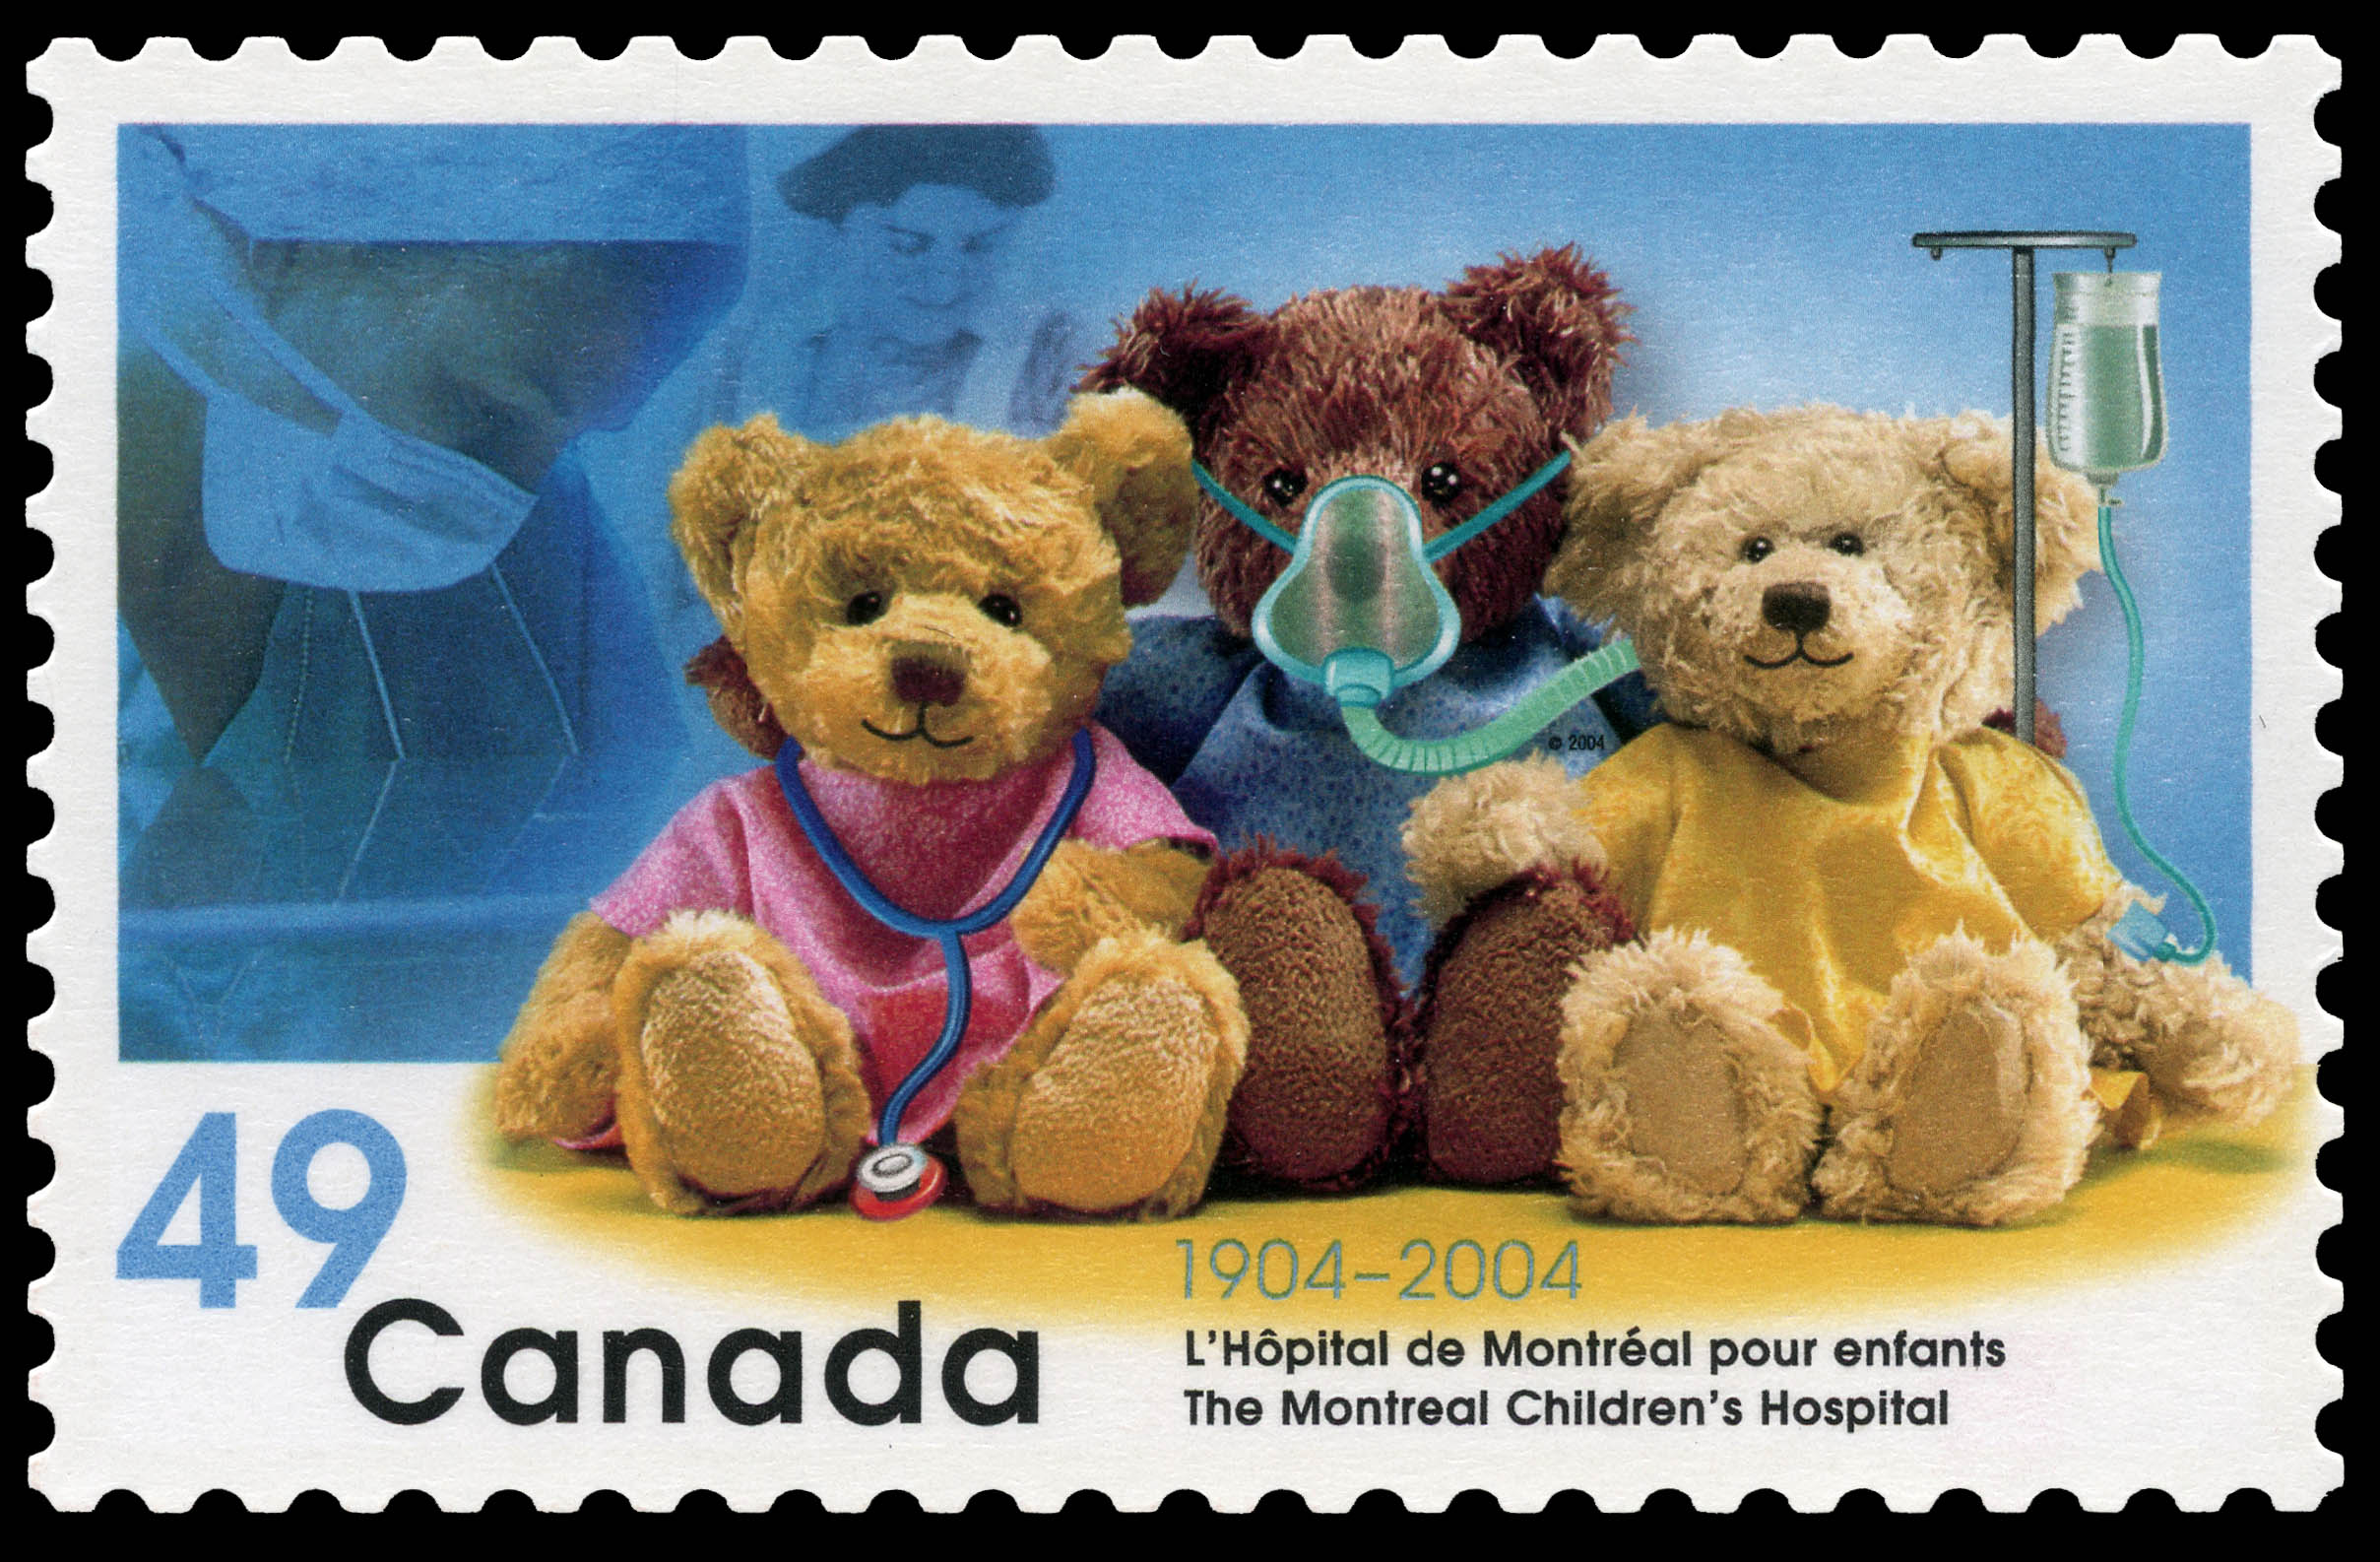 The Montreal Children's Hospital, 1904-2004 Canada Postage Stamp